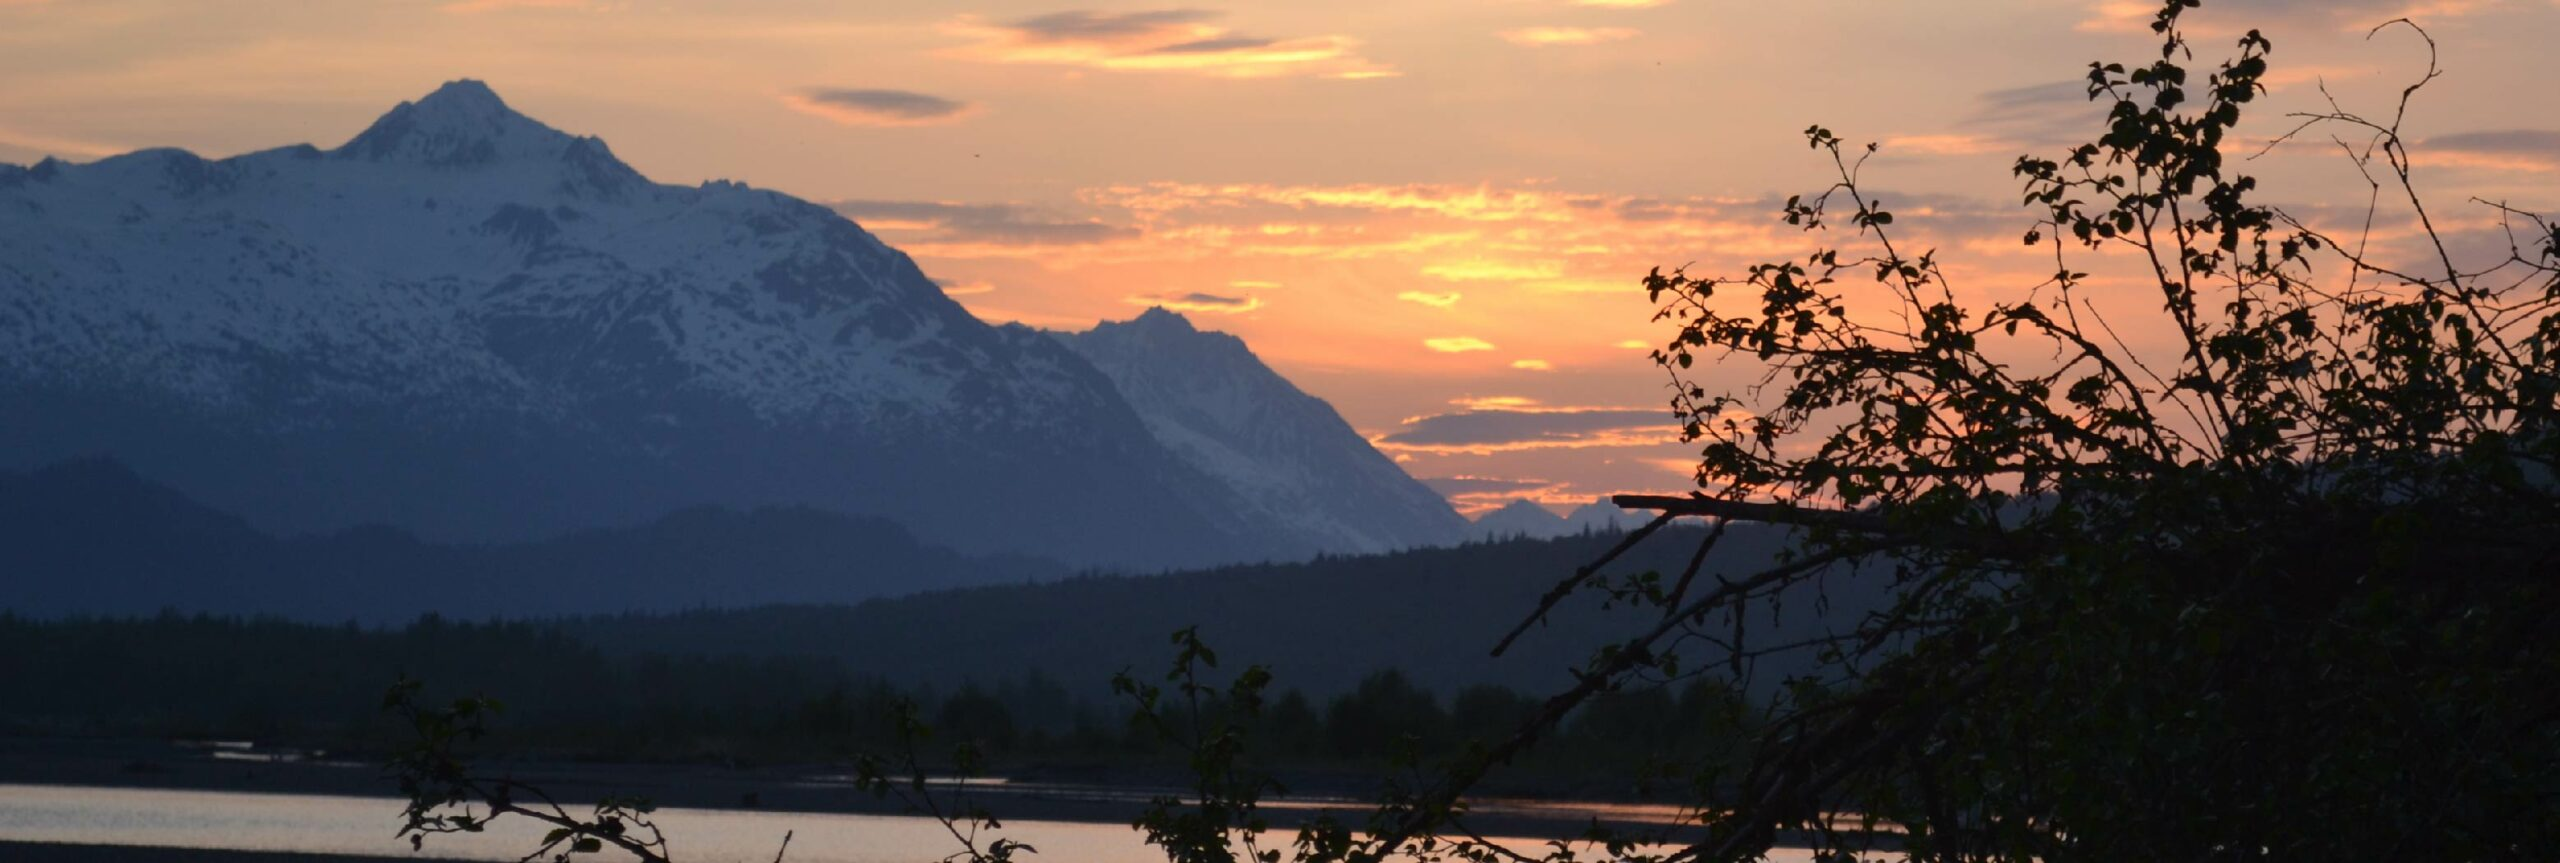 chilkat sunset